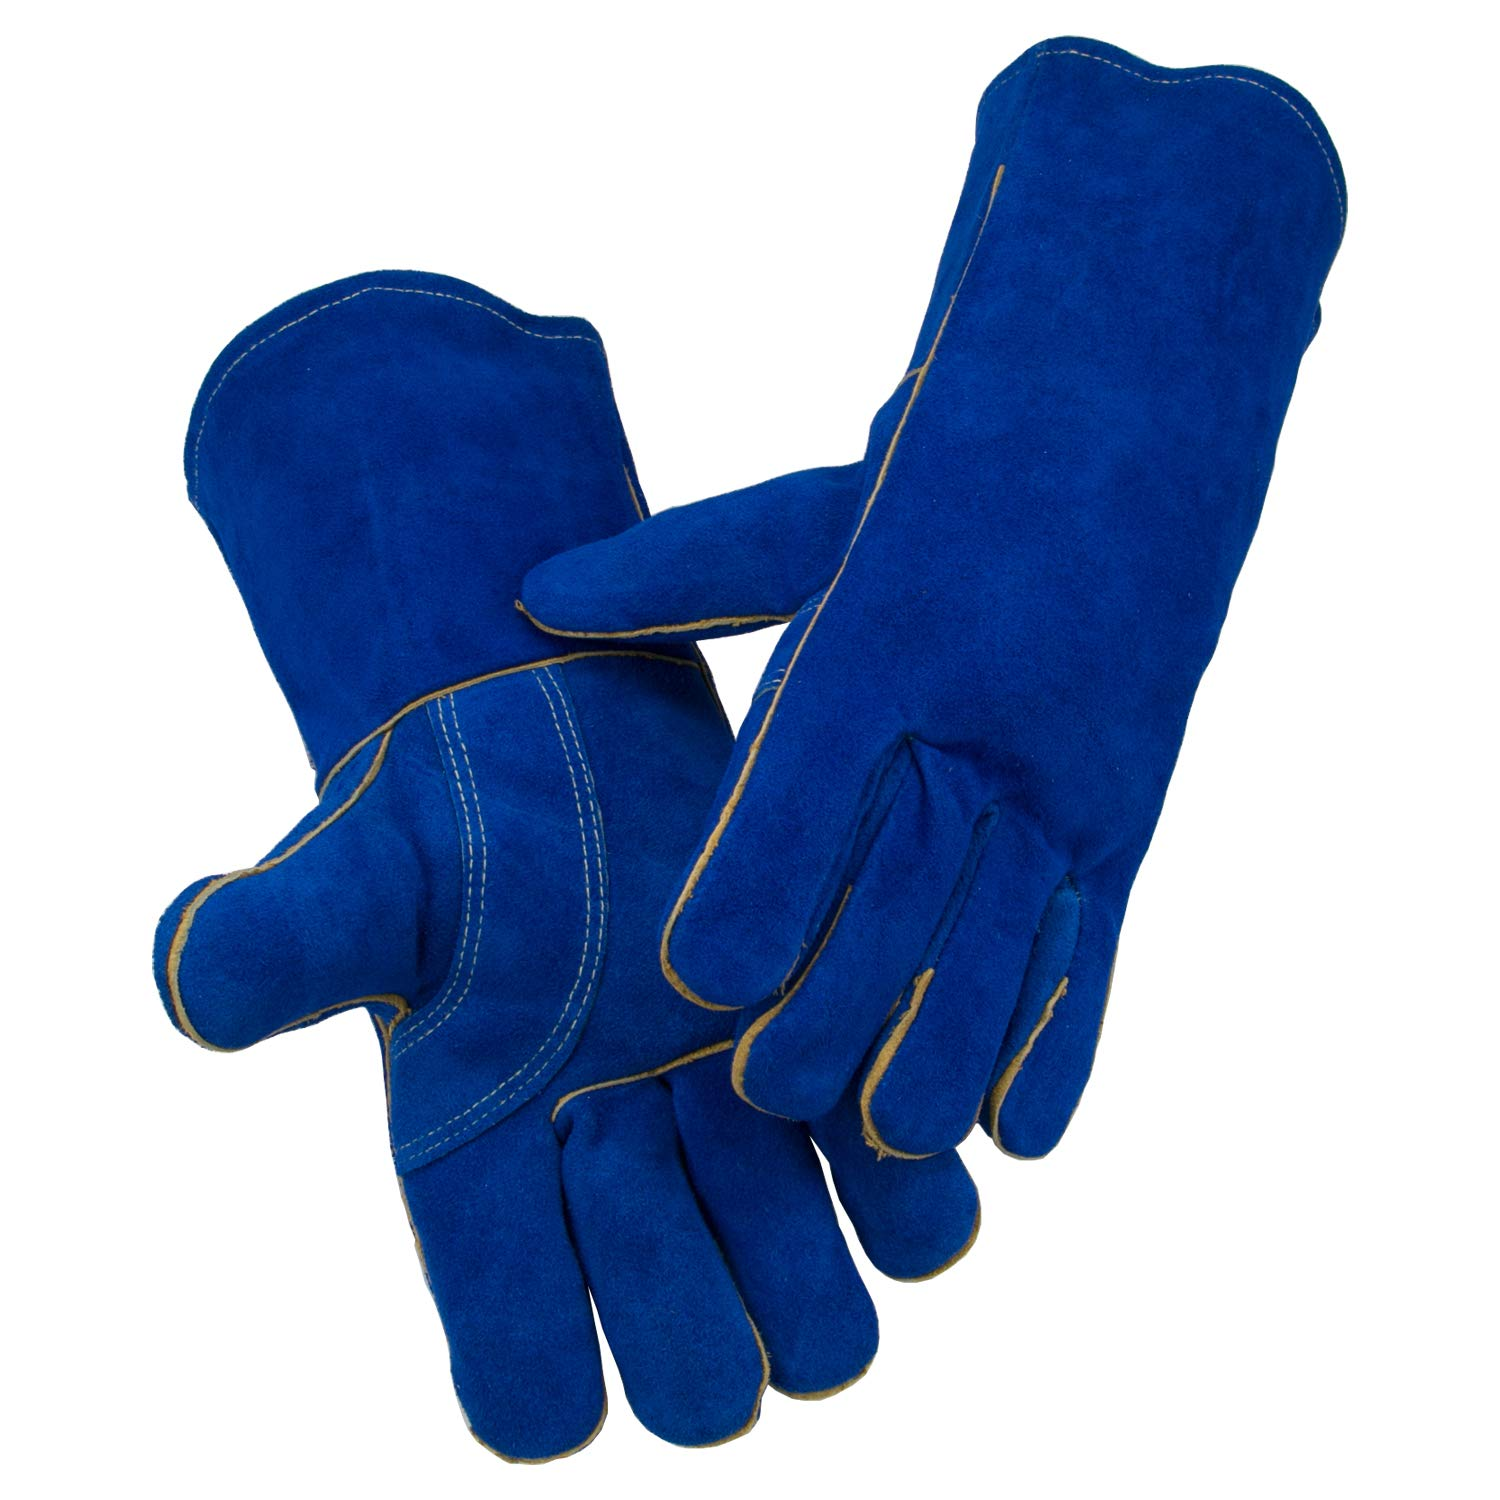 Laproter AB Grade Split Cowhide Heavy Duty Welding Gloves Lined Leather, Size XL, Length 14inch Perfect for Gardening/Oven/Grill/Mig/Fireplace/Stove/Pot Holder/Tig Welder/Animal Handling/BBQ